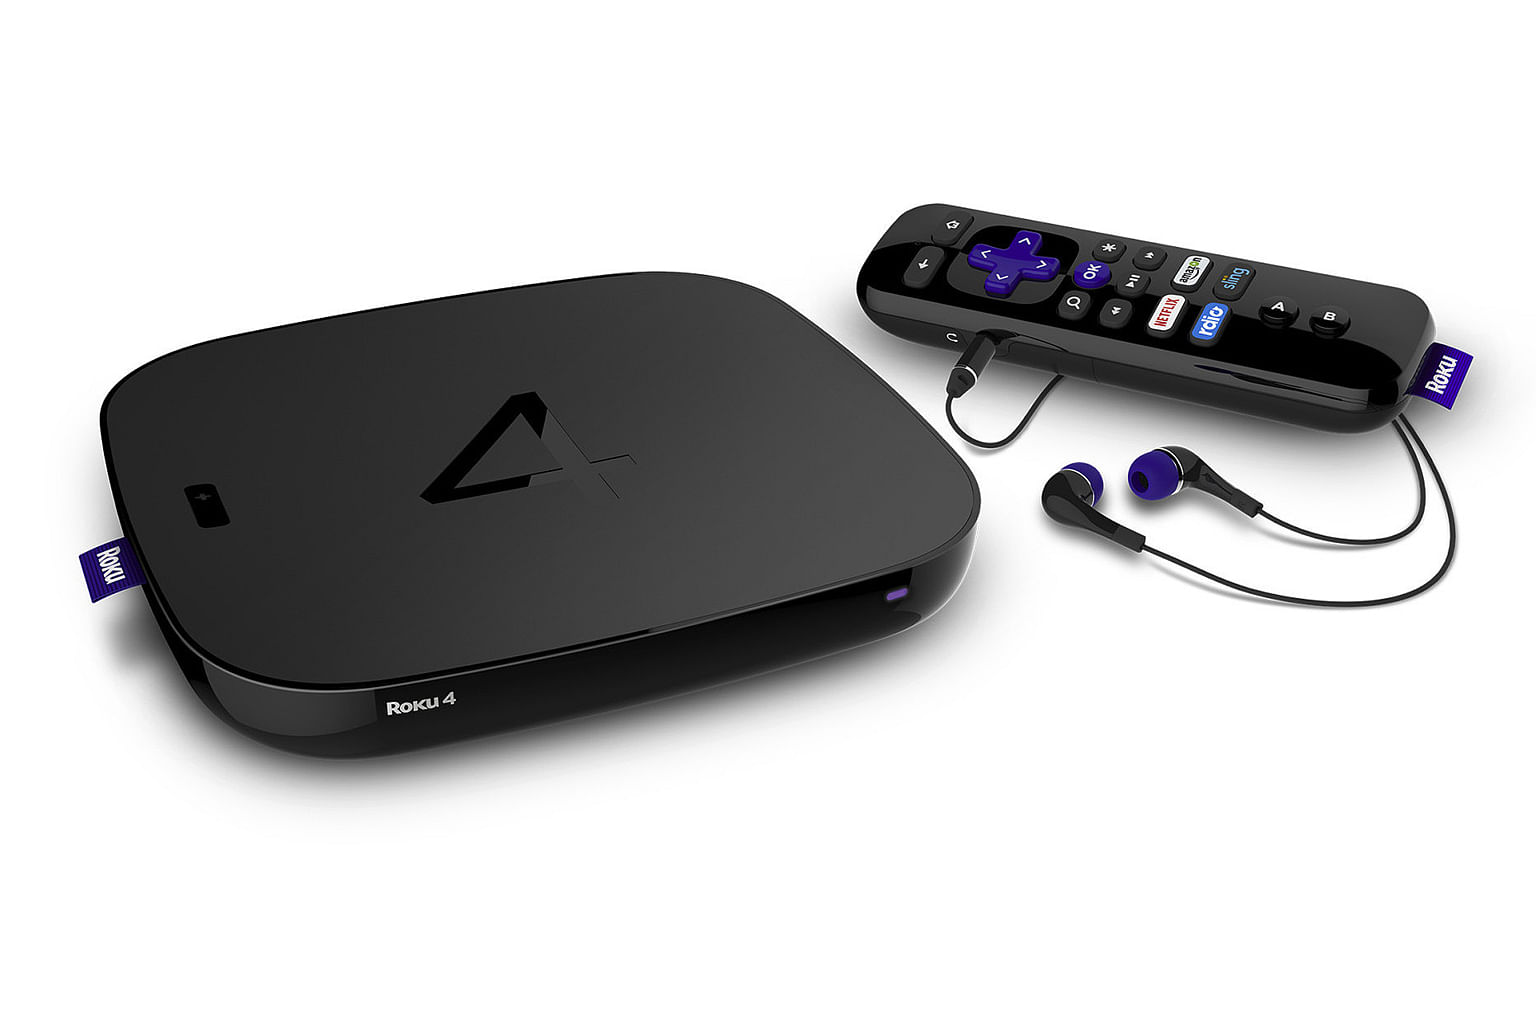 With a VPN, the Roku 4 (above) is probably one of the most mature media streamers around, with more TV-optimised apps than any of its competitors. Its major selling point is its support for 4K content.